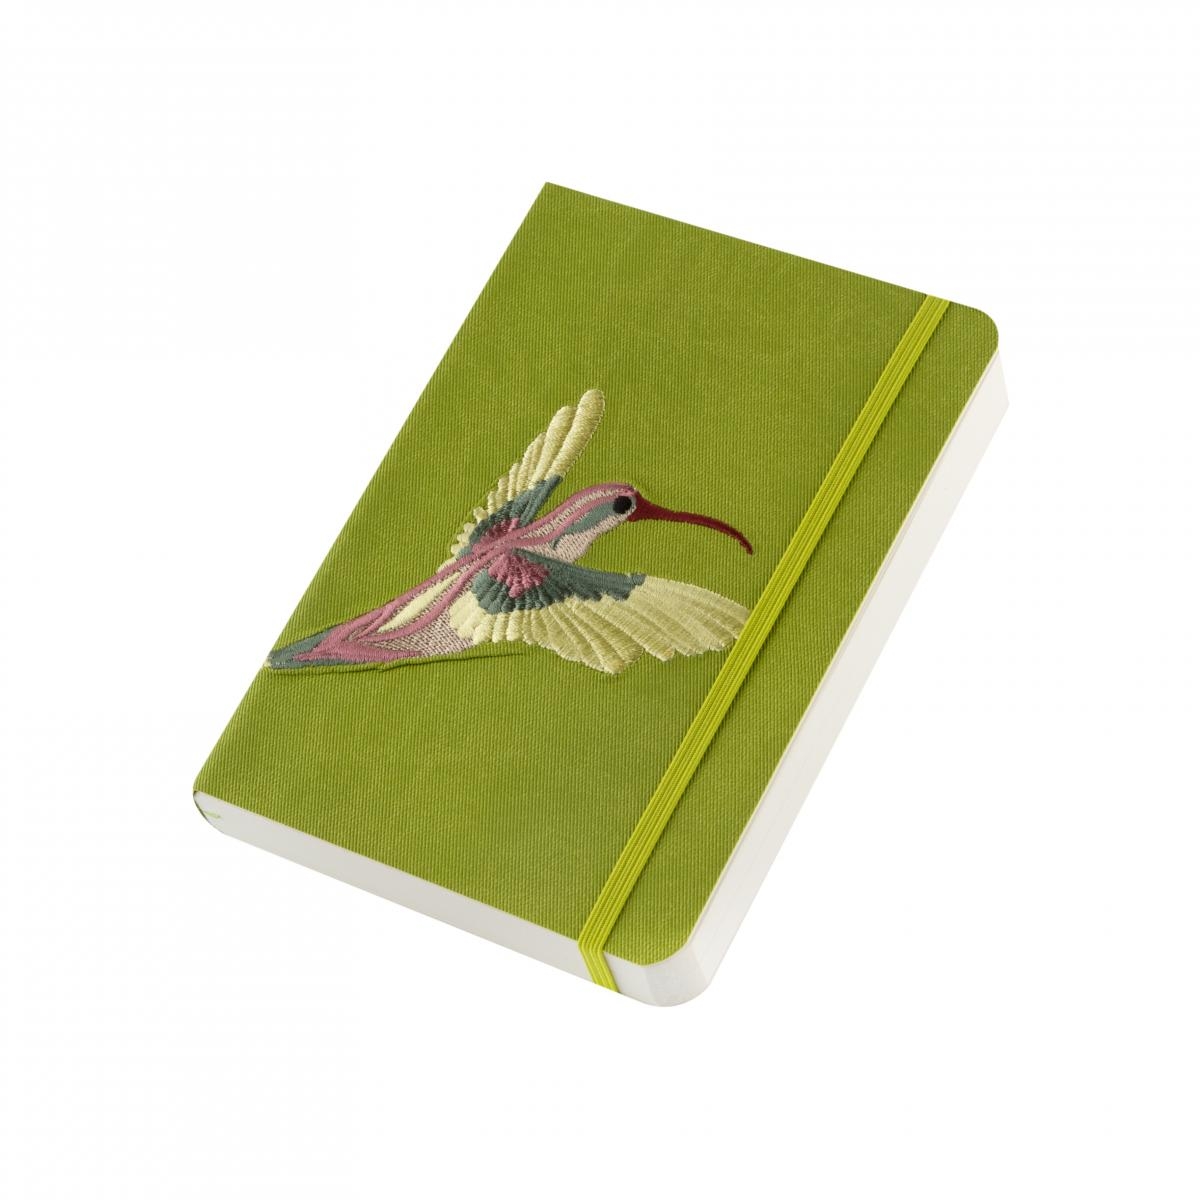 "Eco-leather notebook with embroidery ""Stork"", green. Photo №2. 